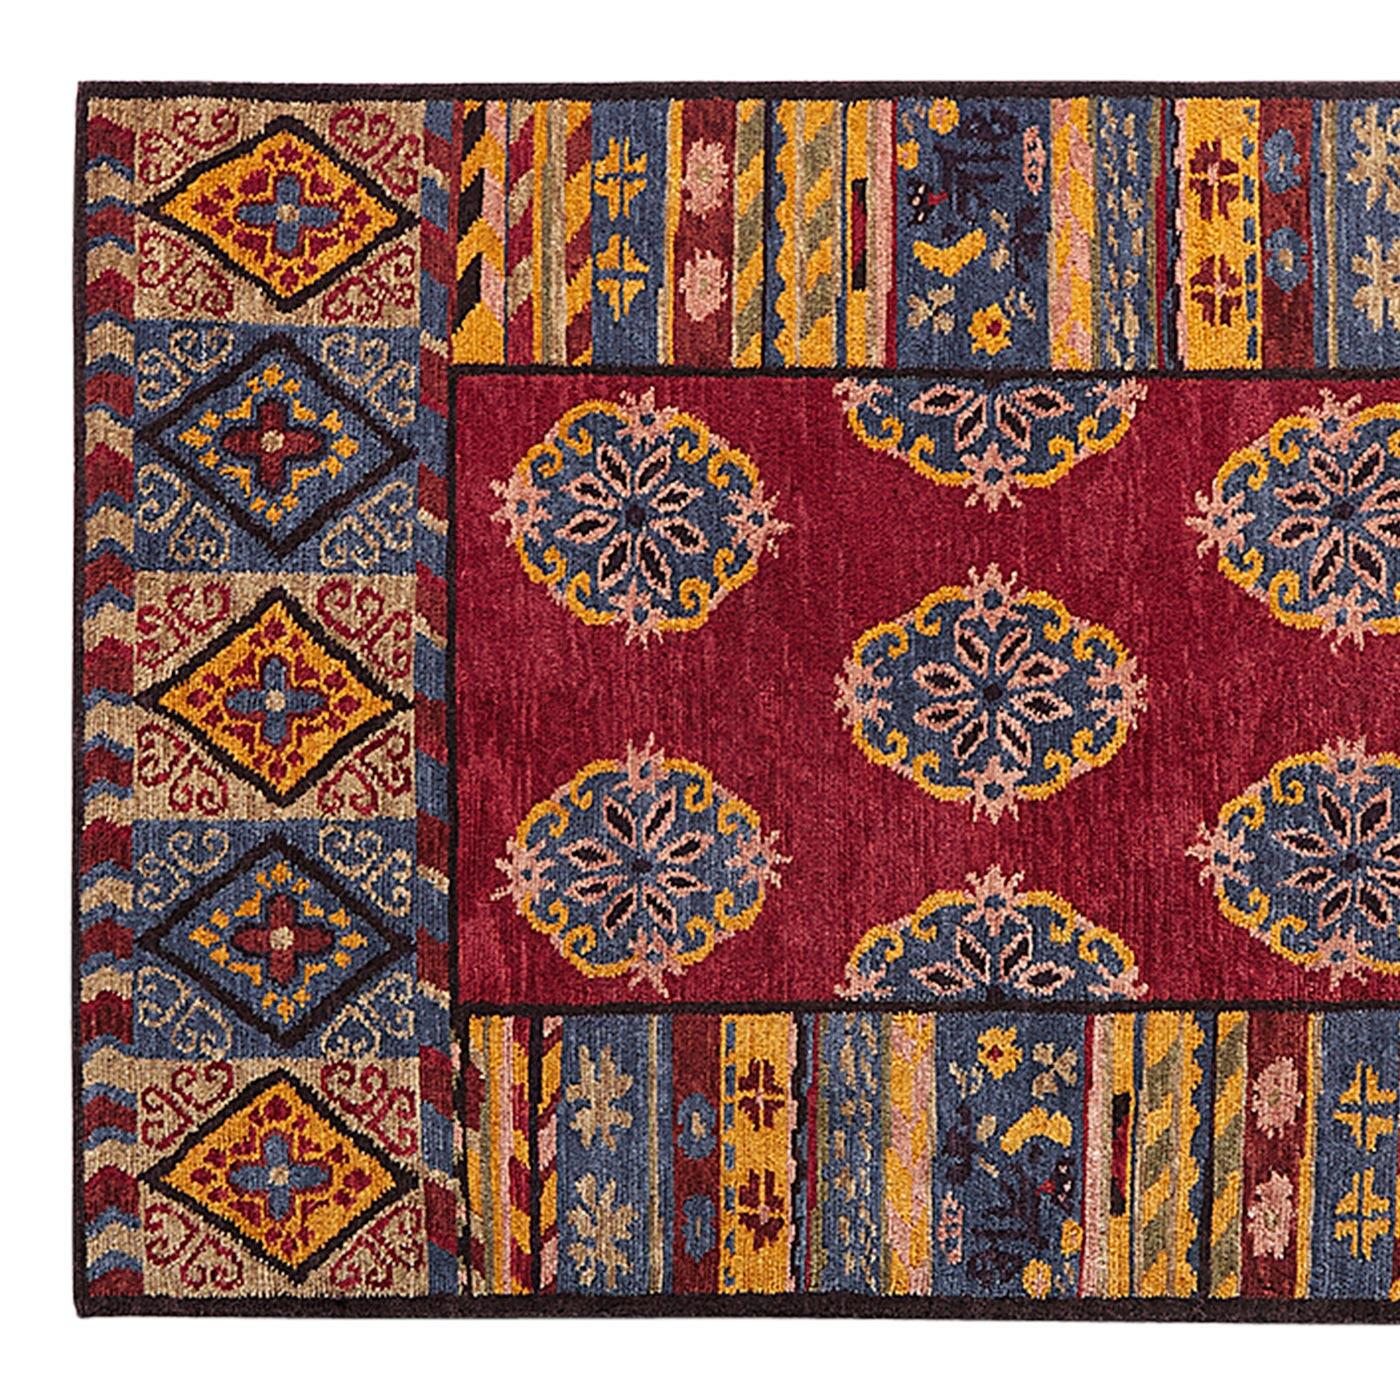 LAKE FOREST KNOTTED RUG - SM: View 1